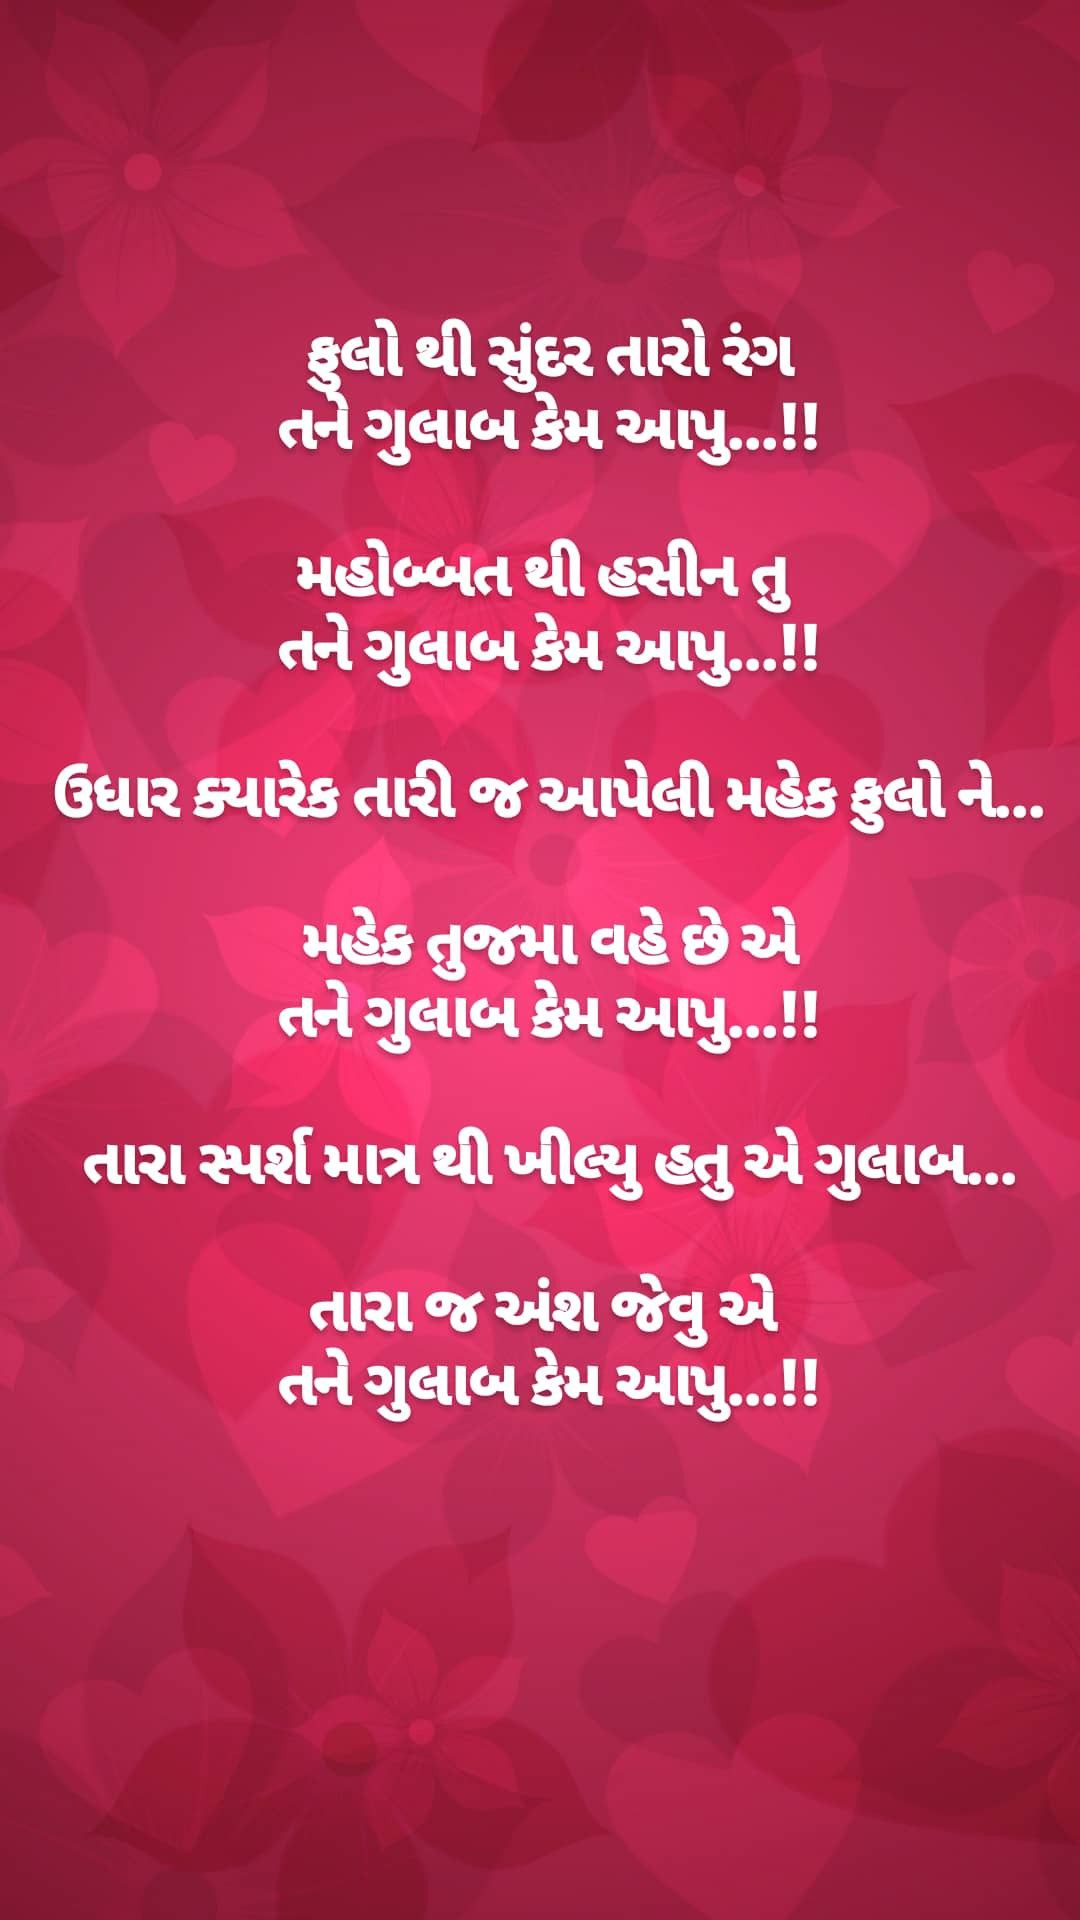 Pin by Om Parmar on Valentine's day Feelings quotes